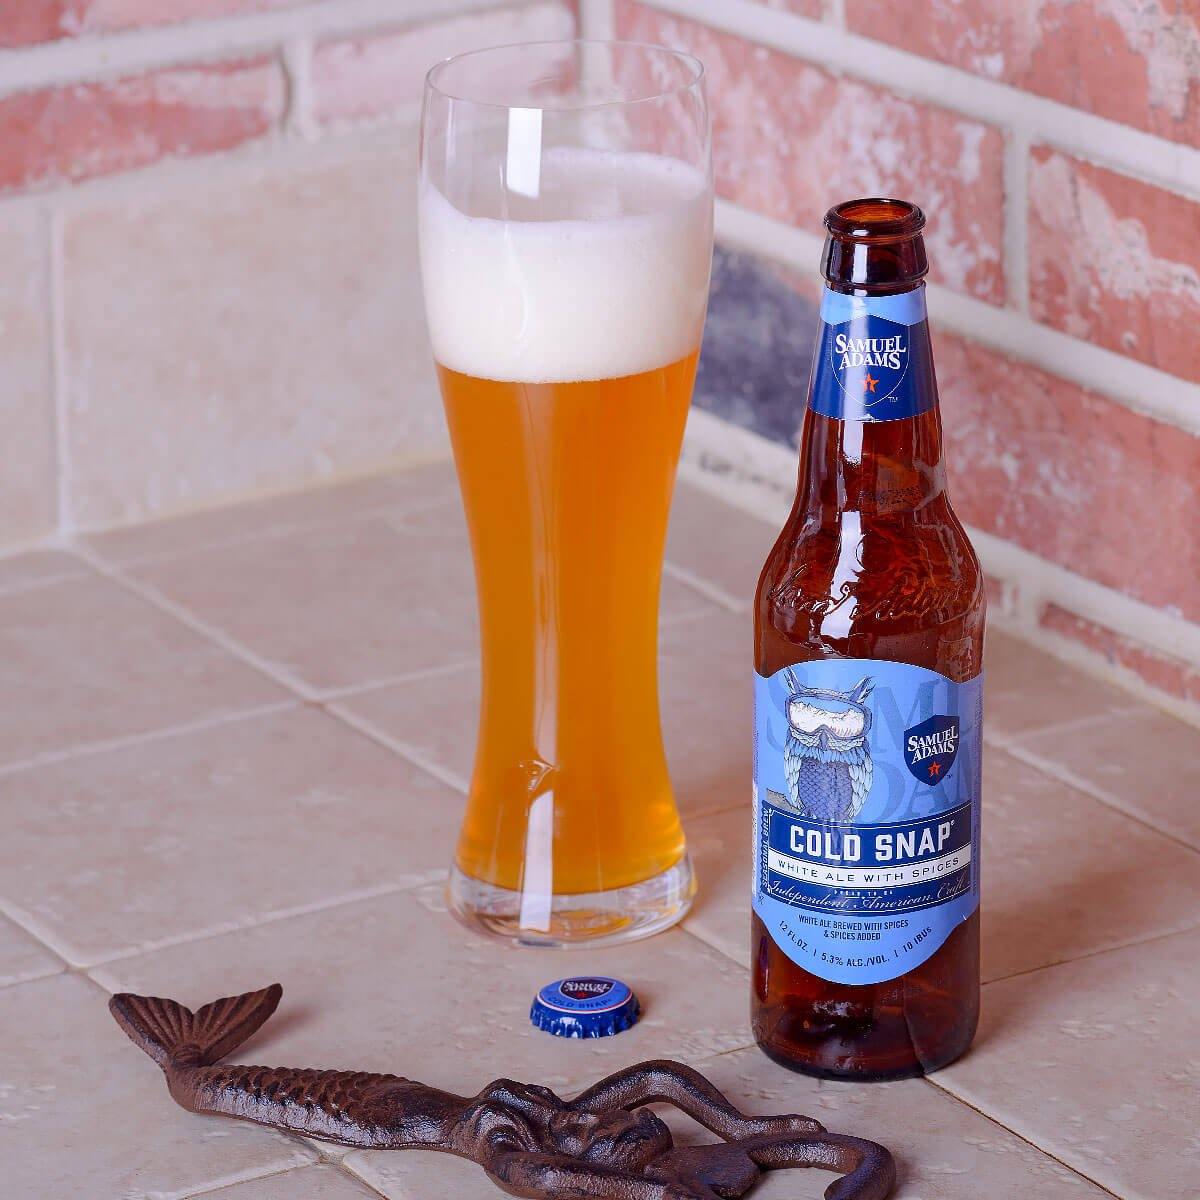 Samuel Adams Cold Snap, a Belgian-style Witbier brewed by the Boston Beer Company